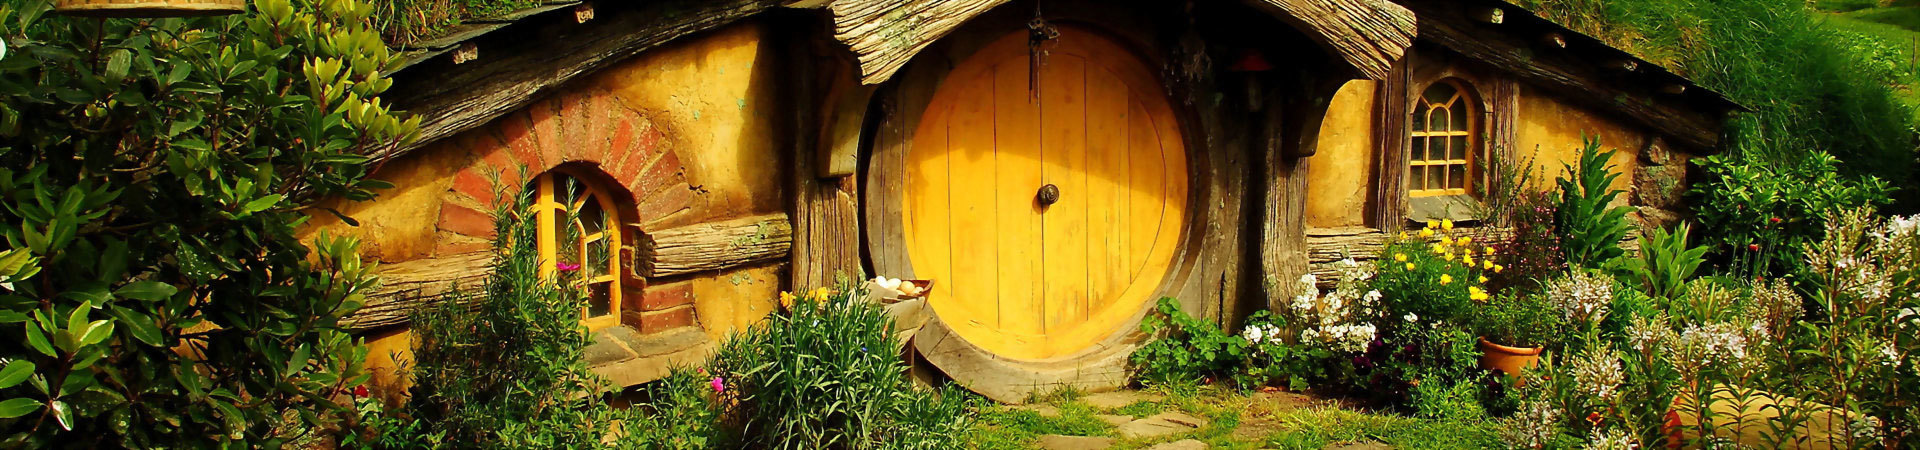 The famous hobbit houses at The Shire, New Zealand